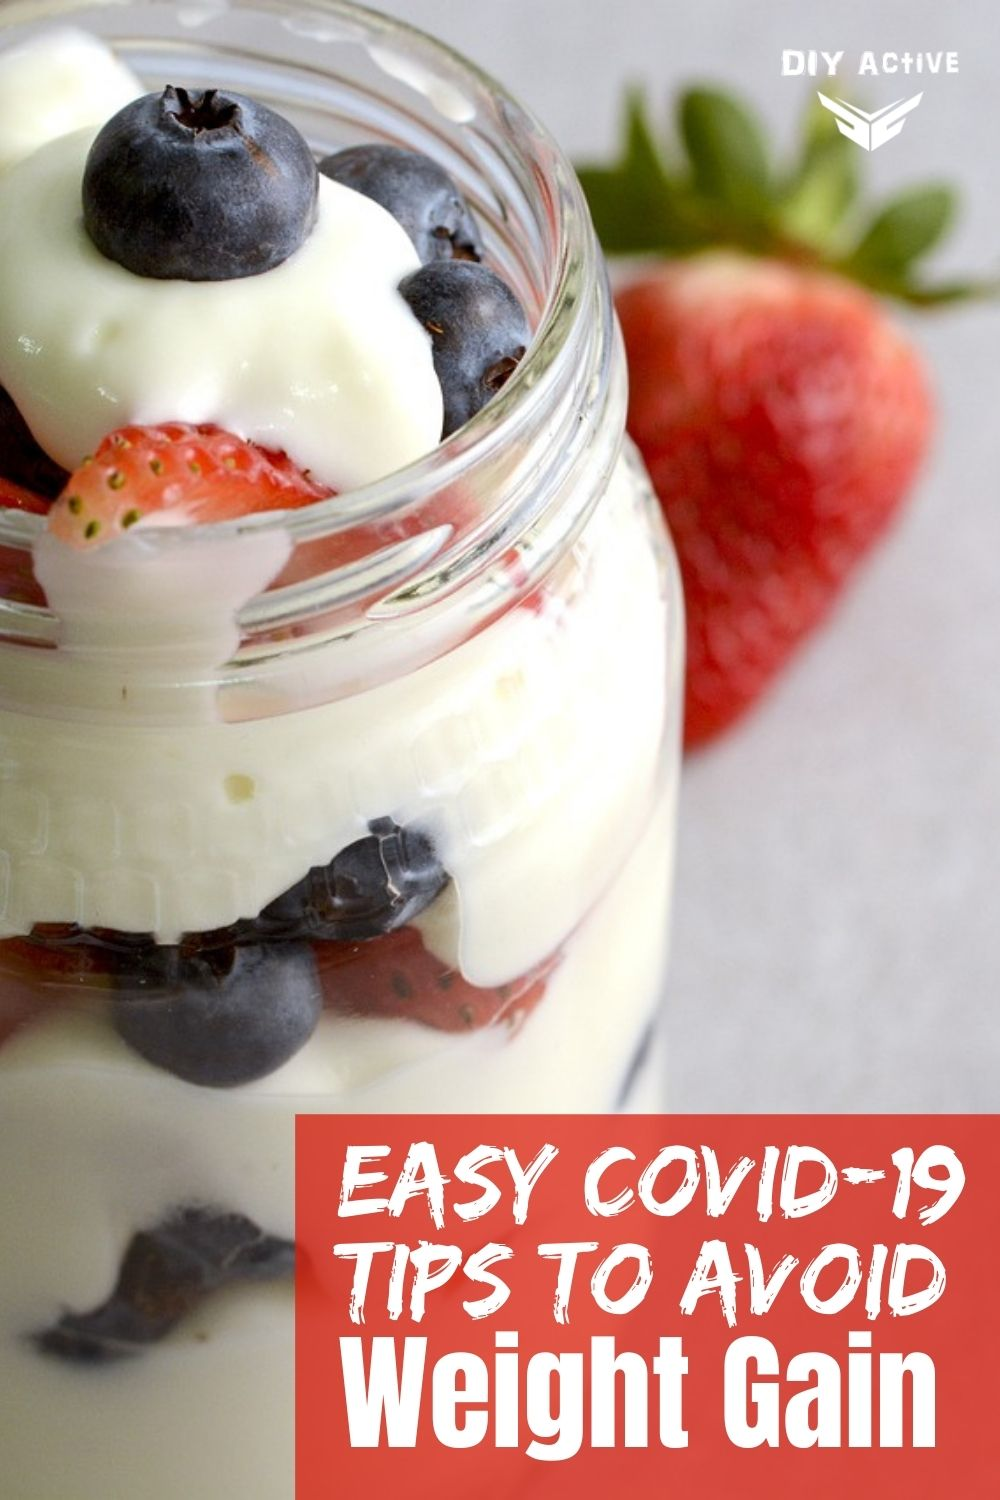 Easy COVID-19 Nutrition Tips to Avoid Weight Gain